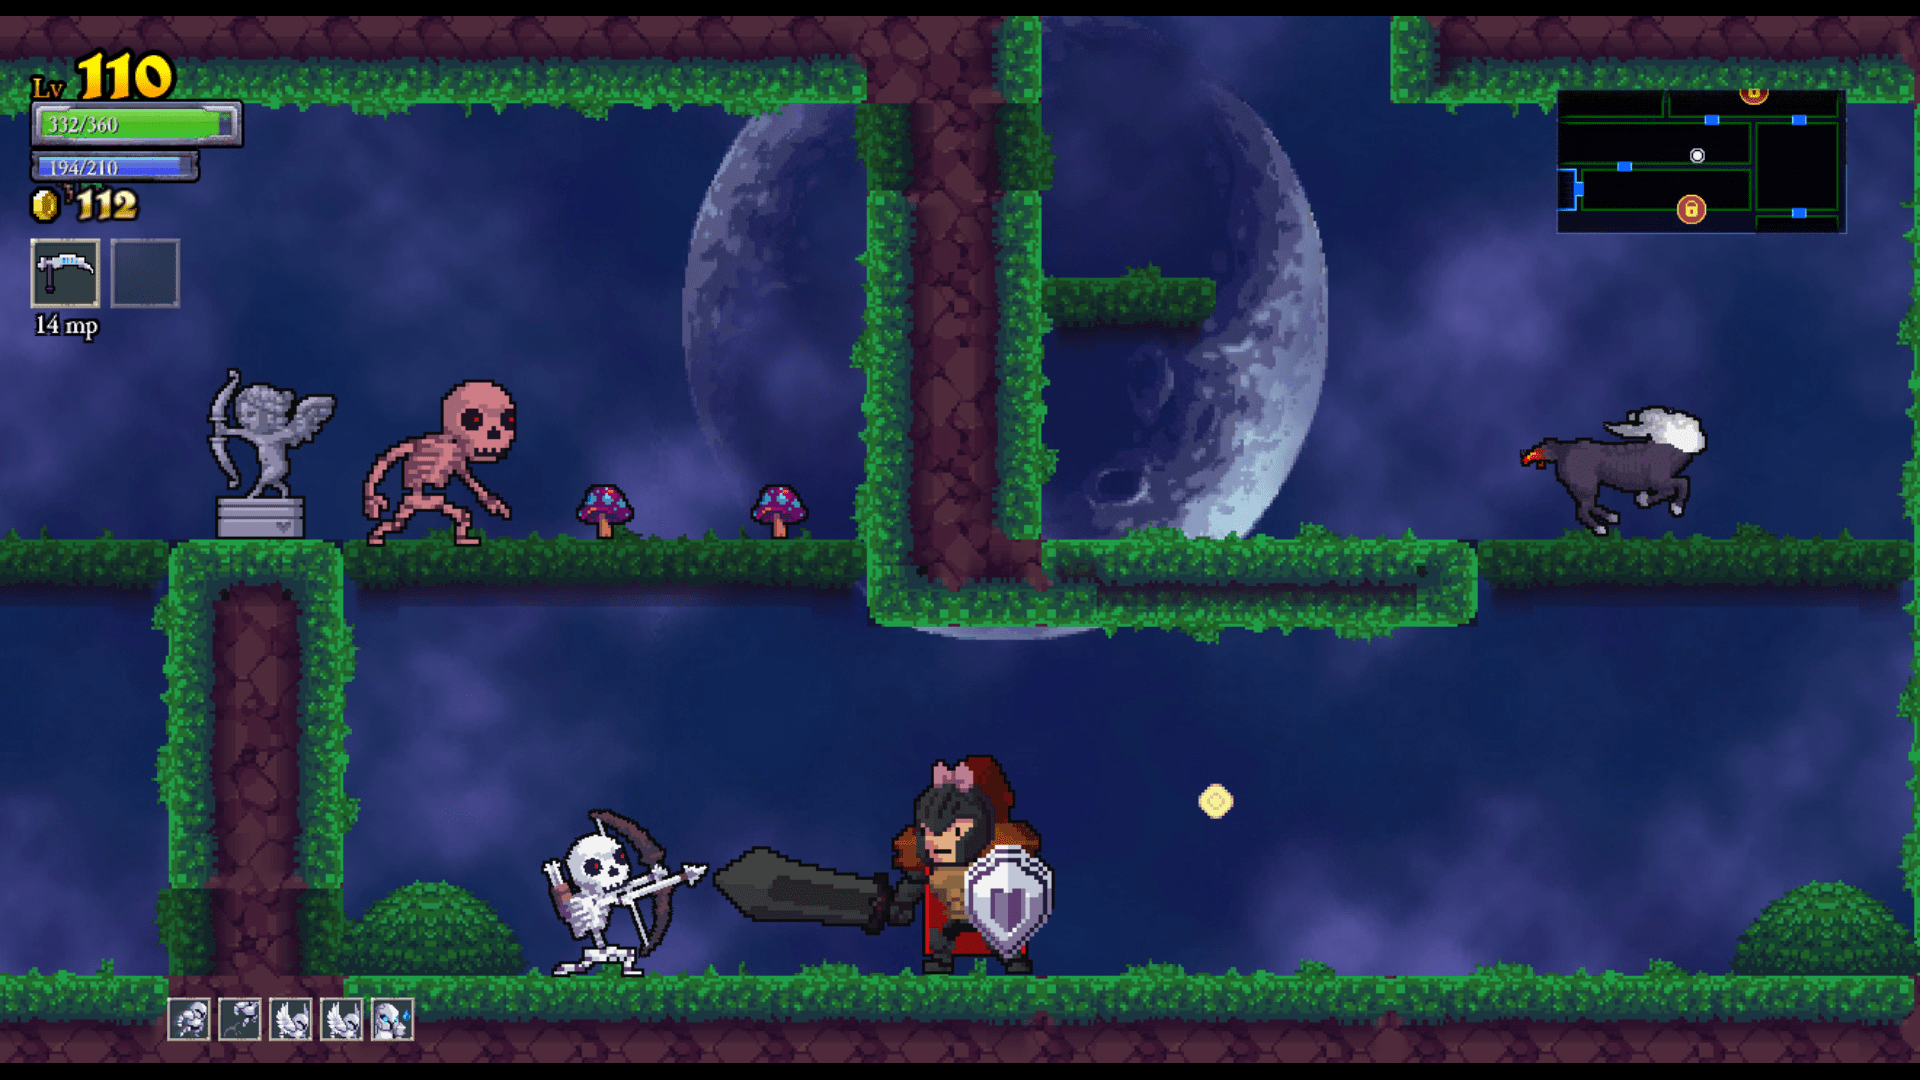 Rogue Legacy screenshot with forest - Cellar Door Games - remix bosses - nonlinear difficulty scaling  sc 1 st  The Gemsbok & Difficulty and Rogue Legacyu0027s Remix Bosses - The Gemsbok pezcame.com